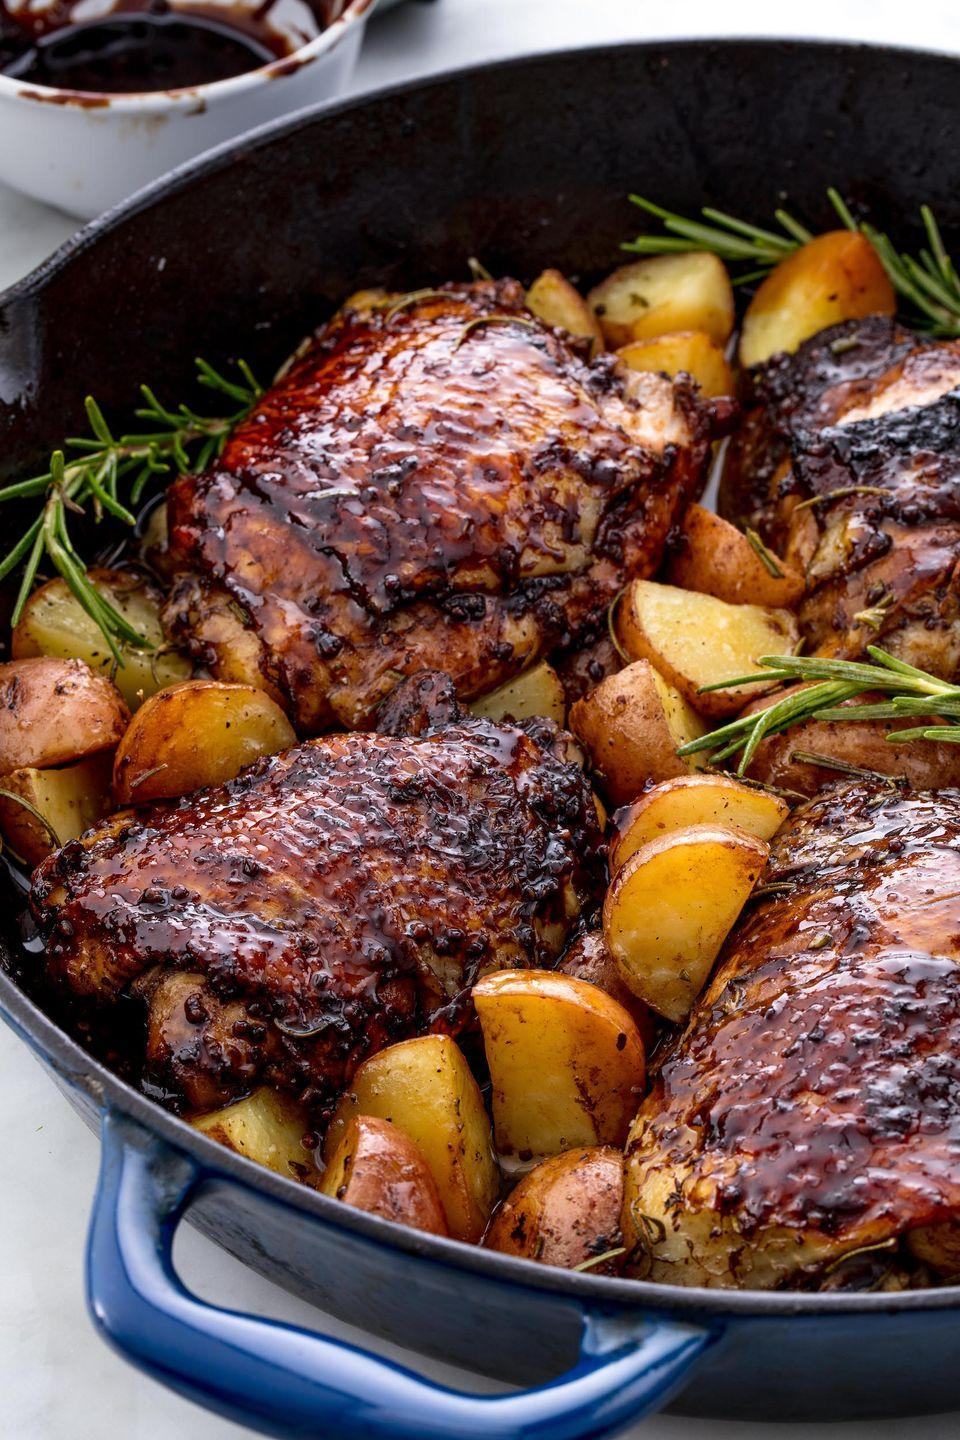 """<p>Chicken thighs or die.</p><p>Get the recipe from <a href=""""https://www.delish.com/cooking/recipe-ideas/recipes/a49138/balsamic-glazed-chicken/"""" rel=""""nofollow noopener"""" target=""""_blank"""" data-ylk=""""slk:Delish"""" class=""""link rapid-noclick-resp"""">Delish</a>.</p>"""